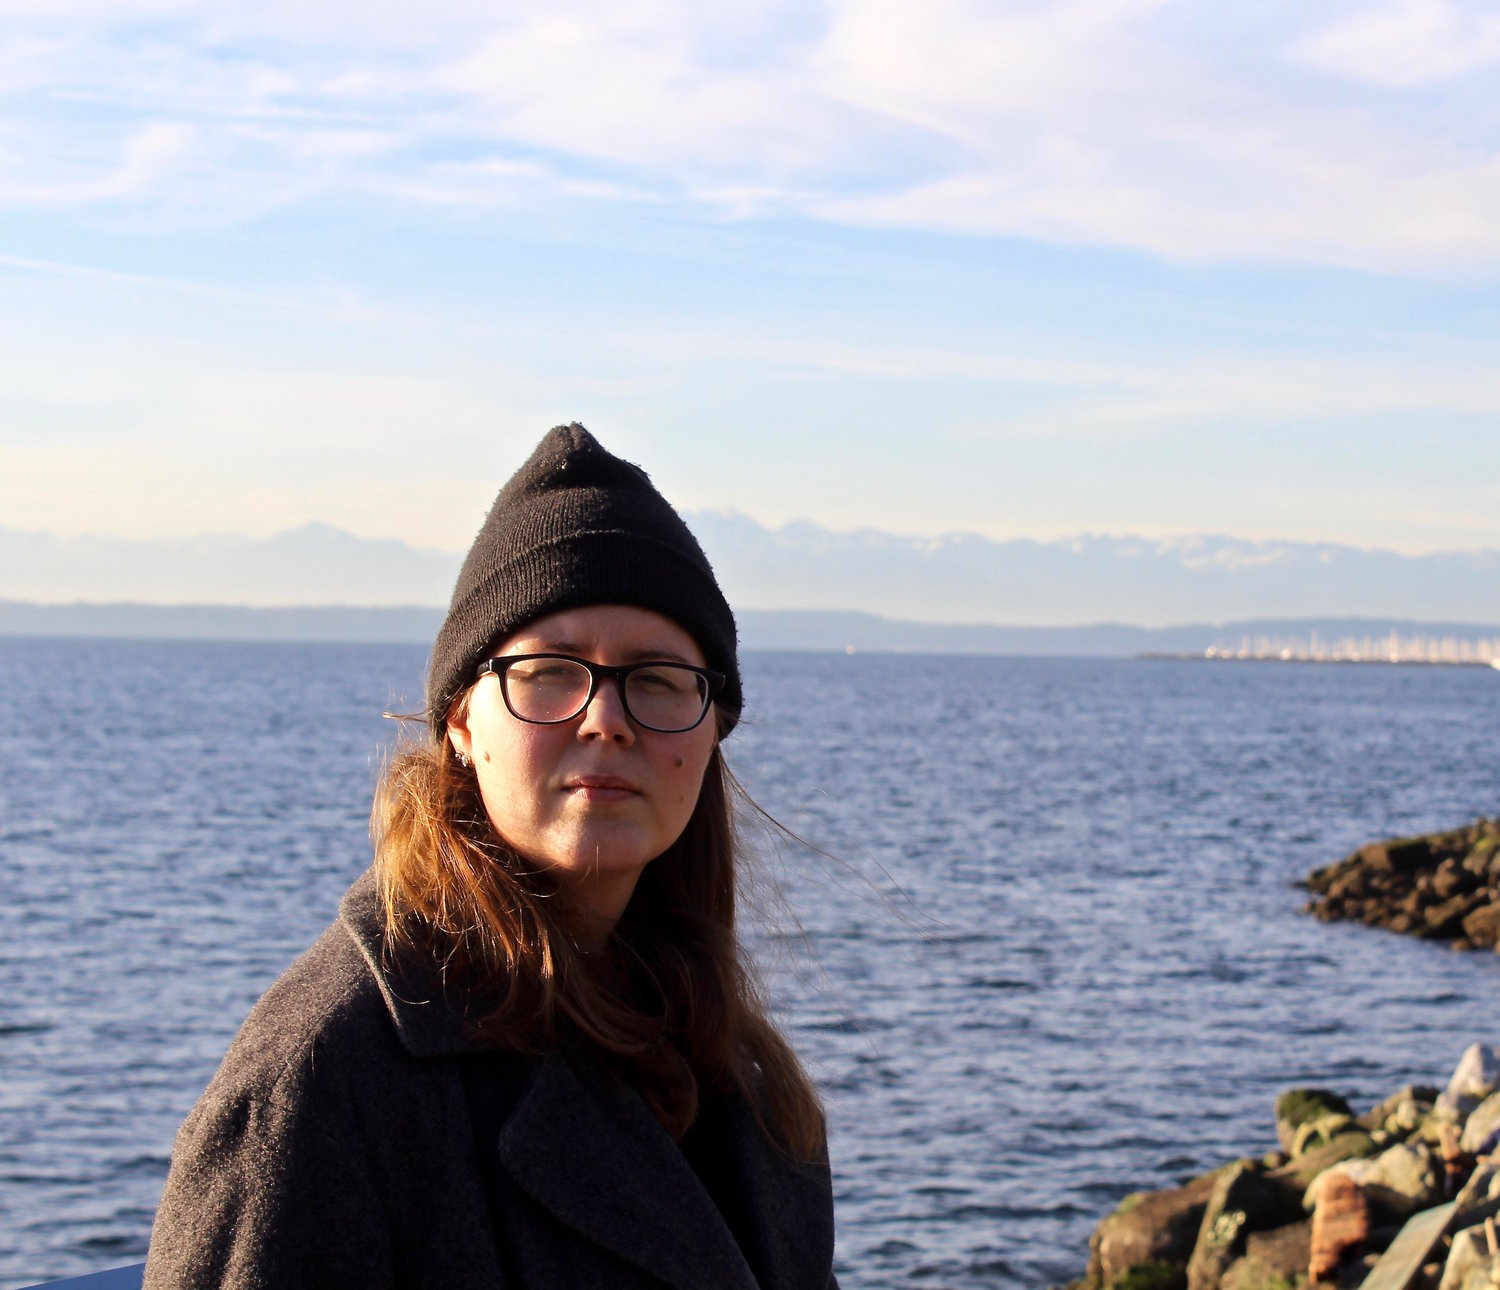 Thoughts from the Composer: Jessi Harvey - who created half of the sound score for Sea Change Within Us, weaving the process of sea ice throughout the string quartet, speaking about joyfully crunching. Listen to the score as you read by clicking here.